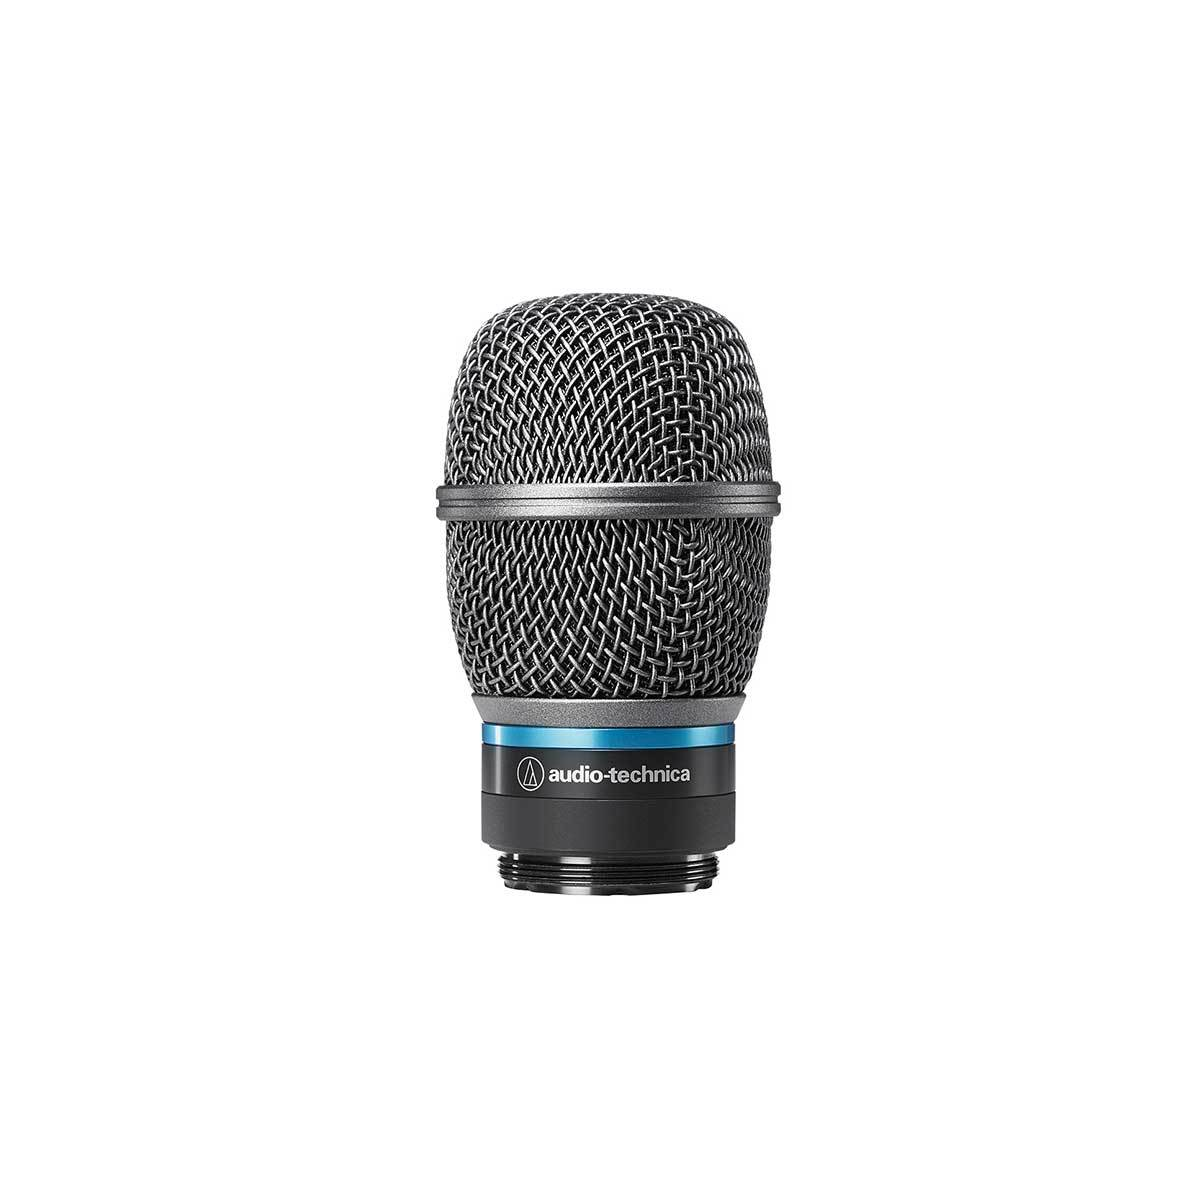 Wireless Systems - Audio-Technica ATW-C3300 Interchangeable Cardioid Condenser Microphone Capsule